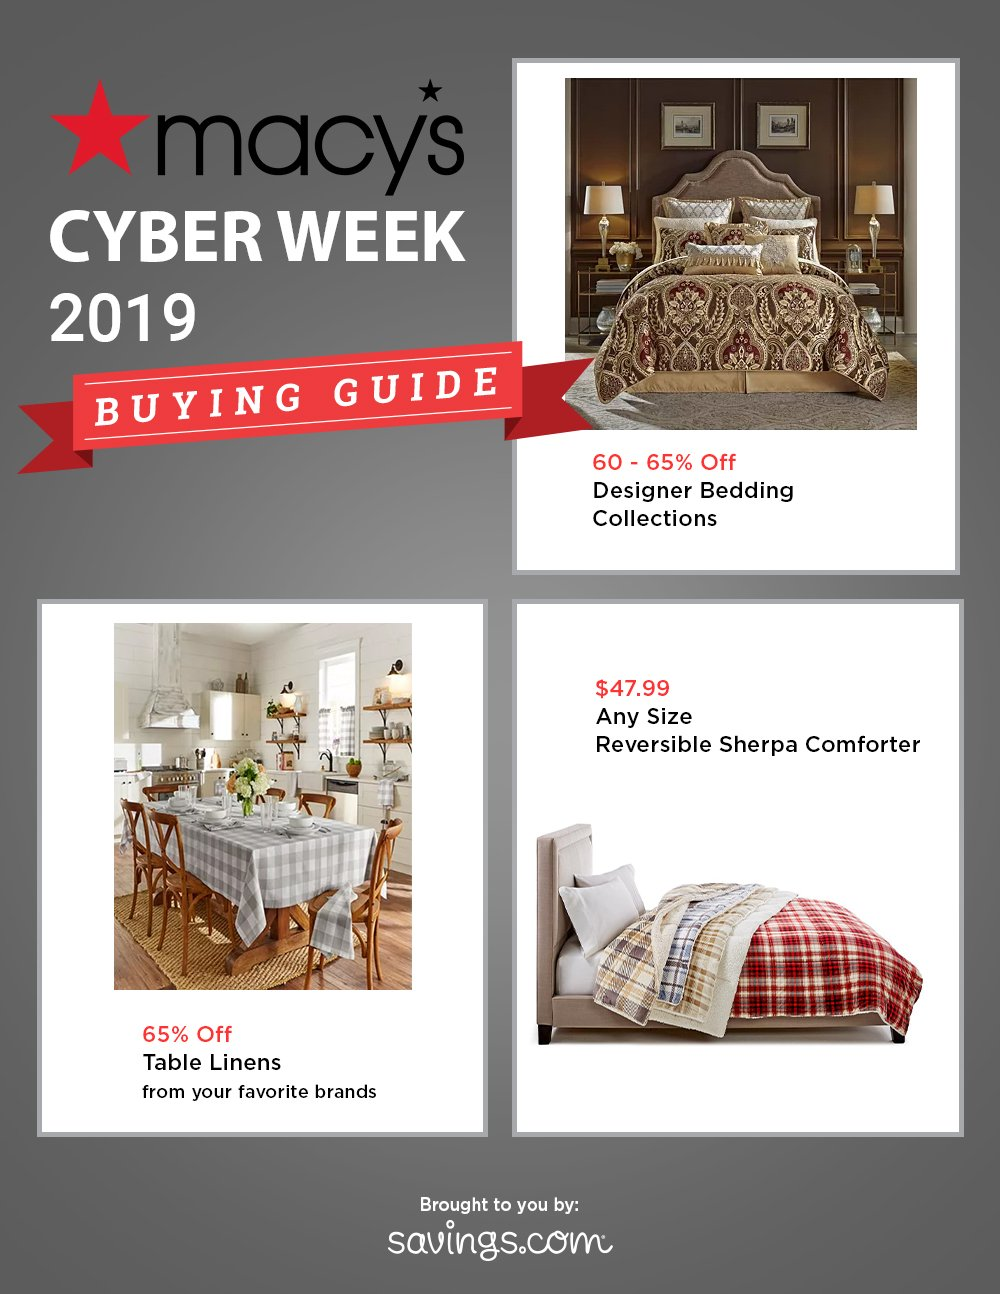 Macy's Cyber Week Buying Guide 2019 Page 3